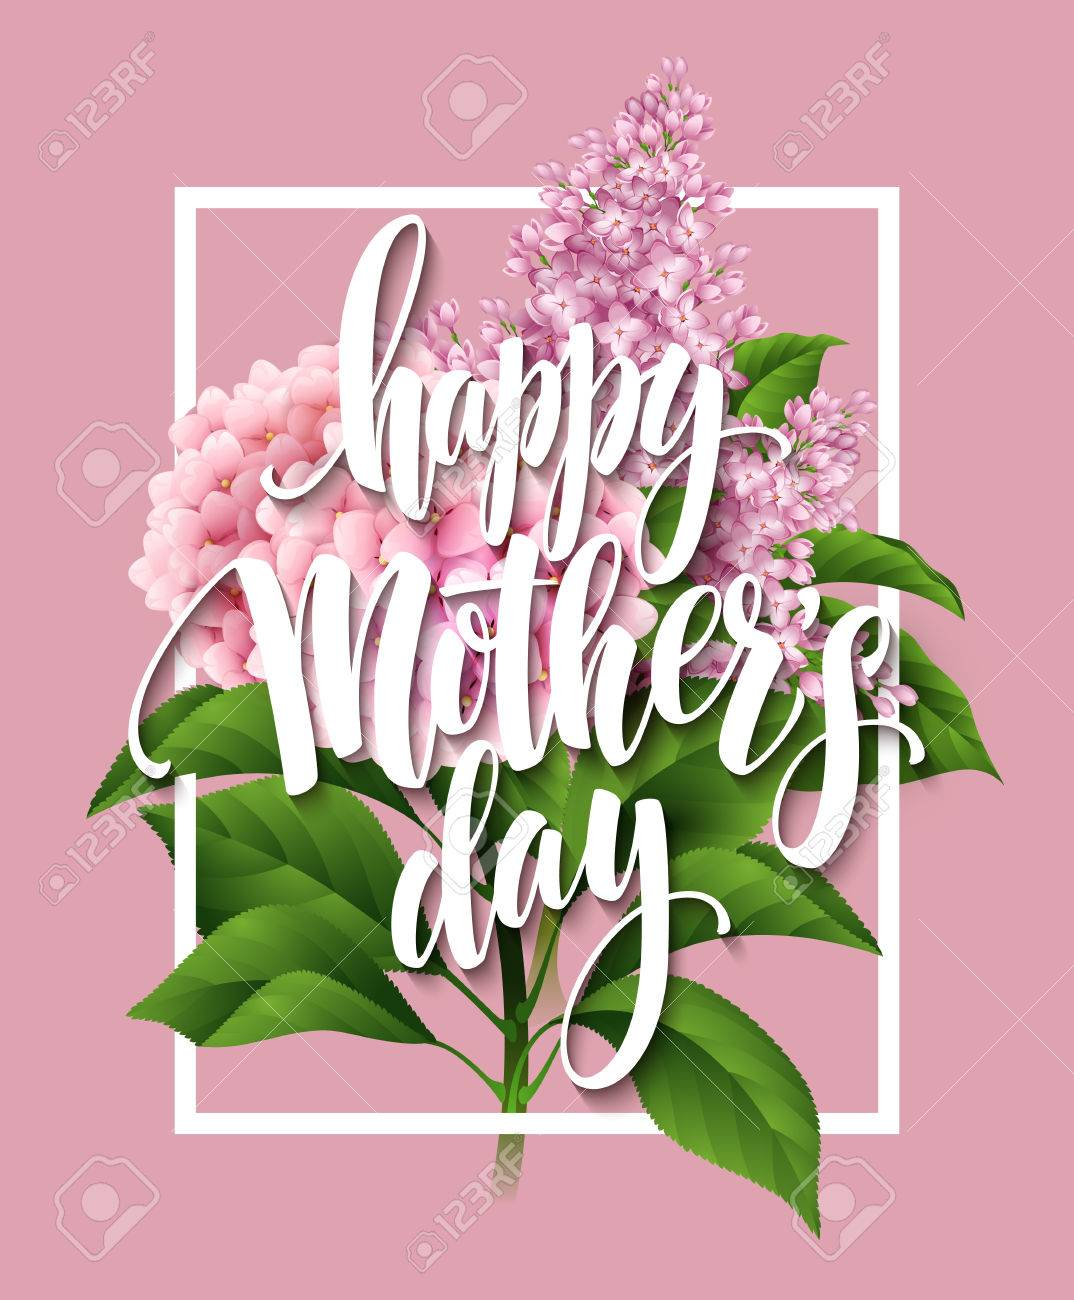 Happy Mothers Day Lettering card. Greetimng card with flower. Vector illustration EPS 10 - 53927081